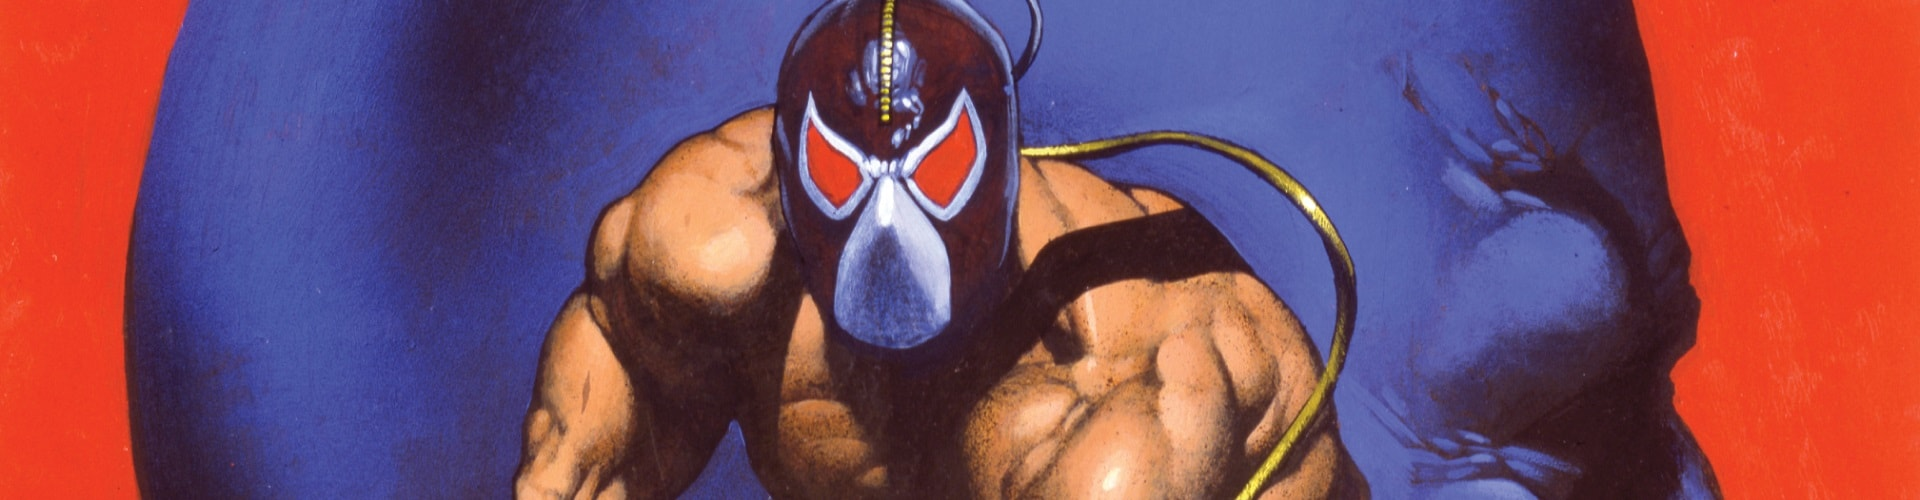 on sale this week bane